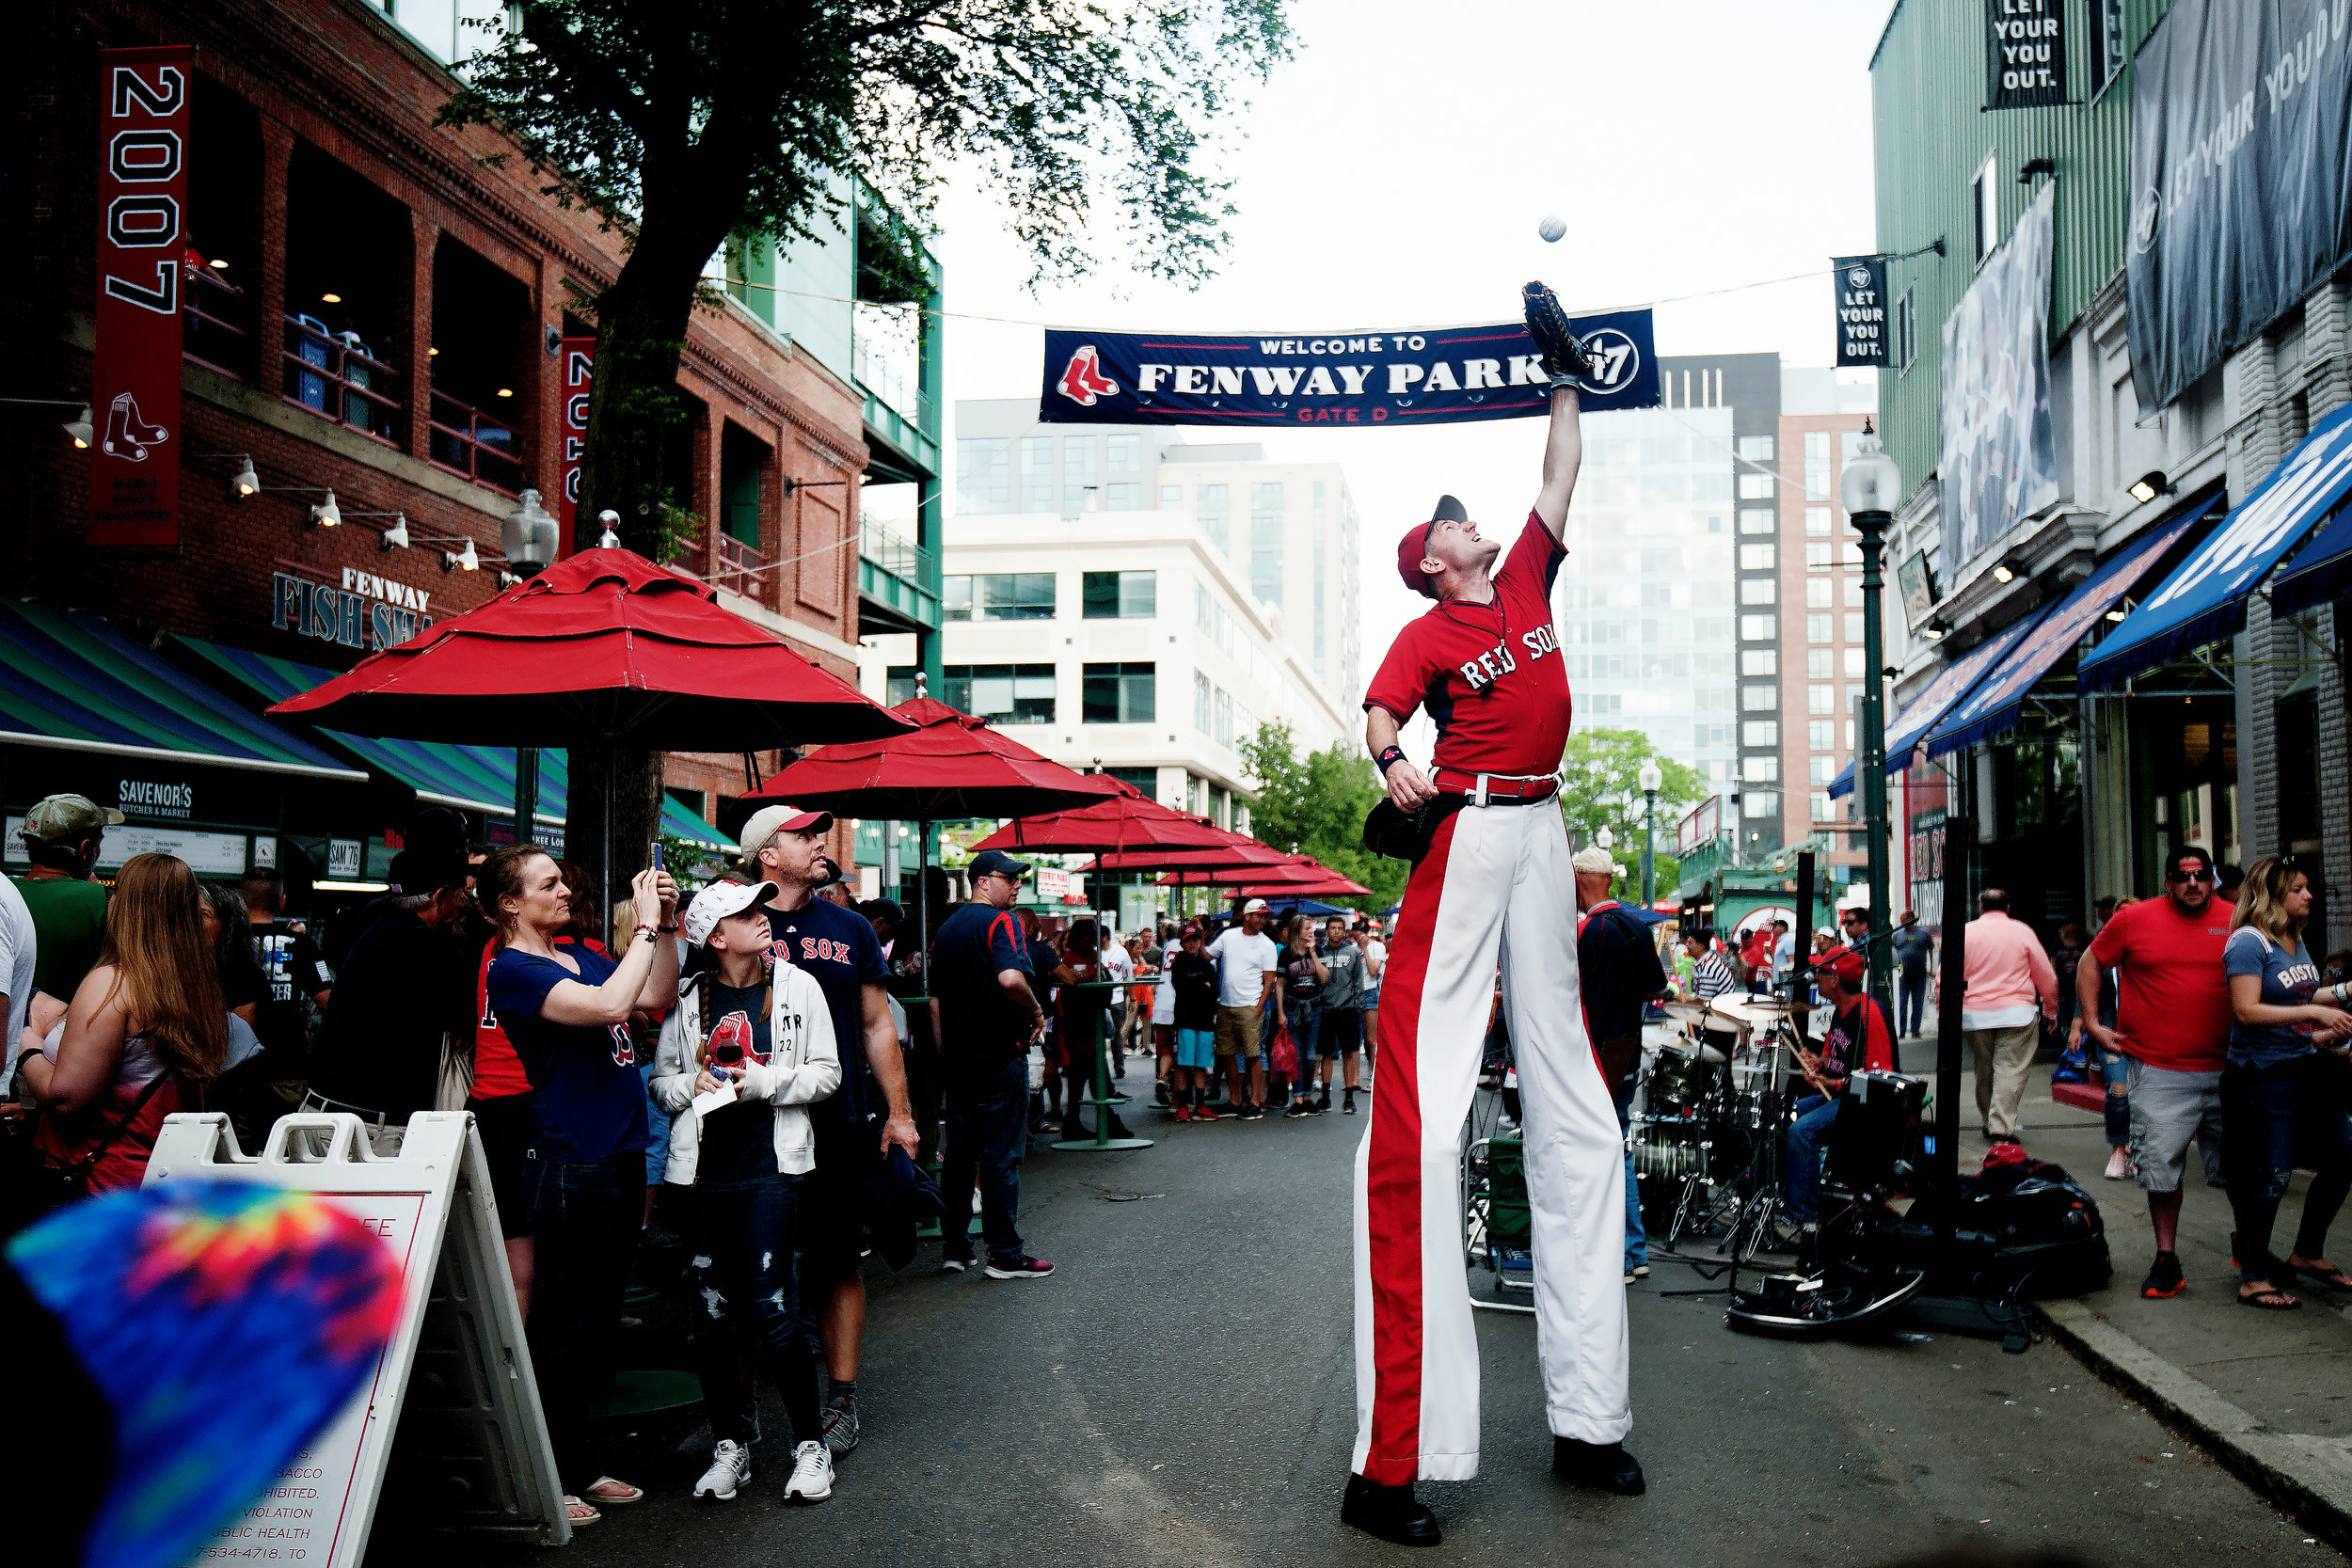 """Big League Brian"" entertains a crowd gathering on Jersey Street before the game against Chicago White Sox at Fenway Park in Boston, Massachusetts on Friday, June 8, 2018."